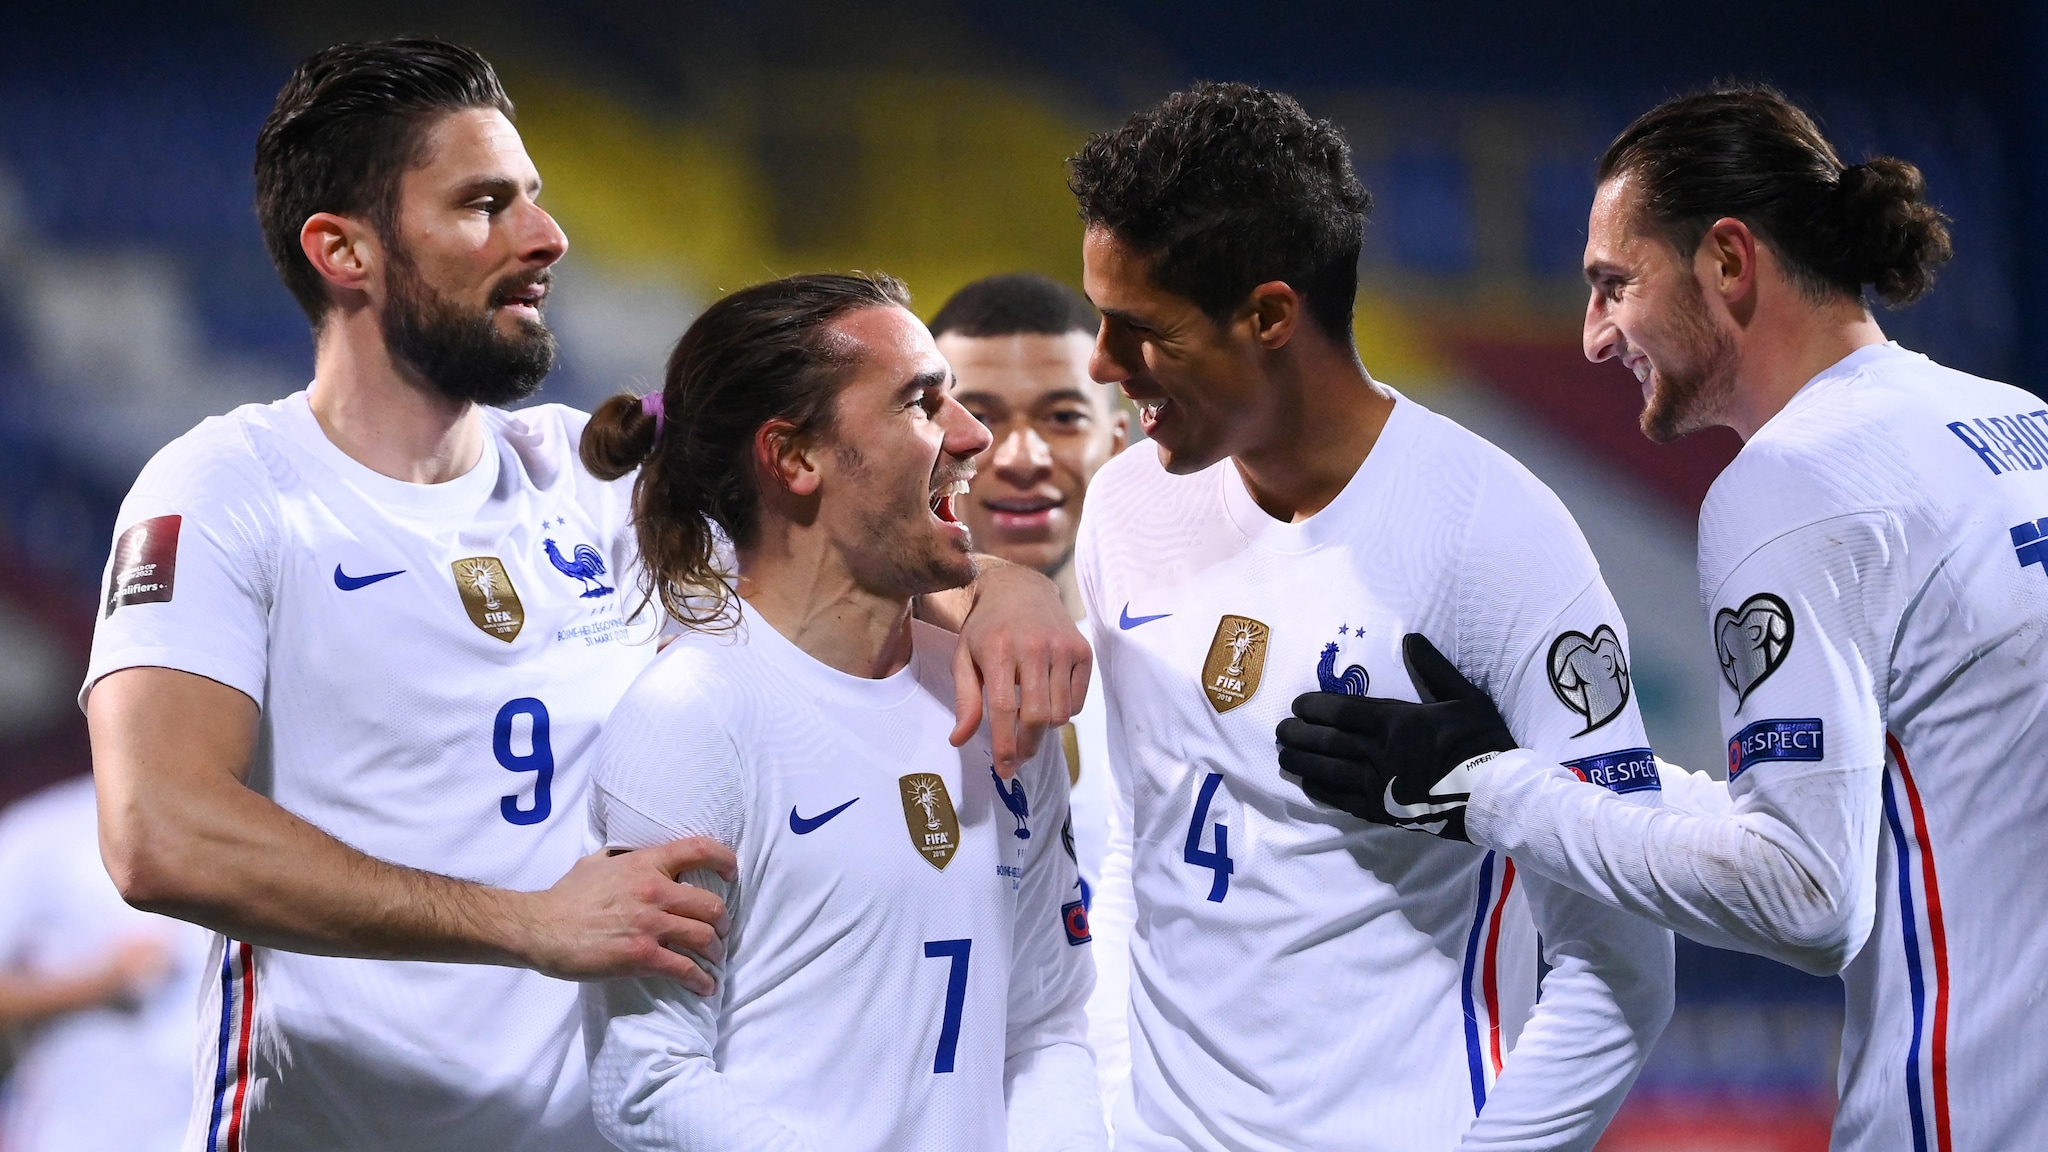 2022 World Cup qualifying: all you need to know